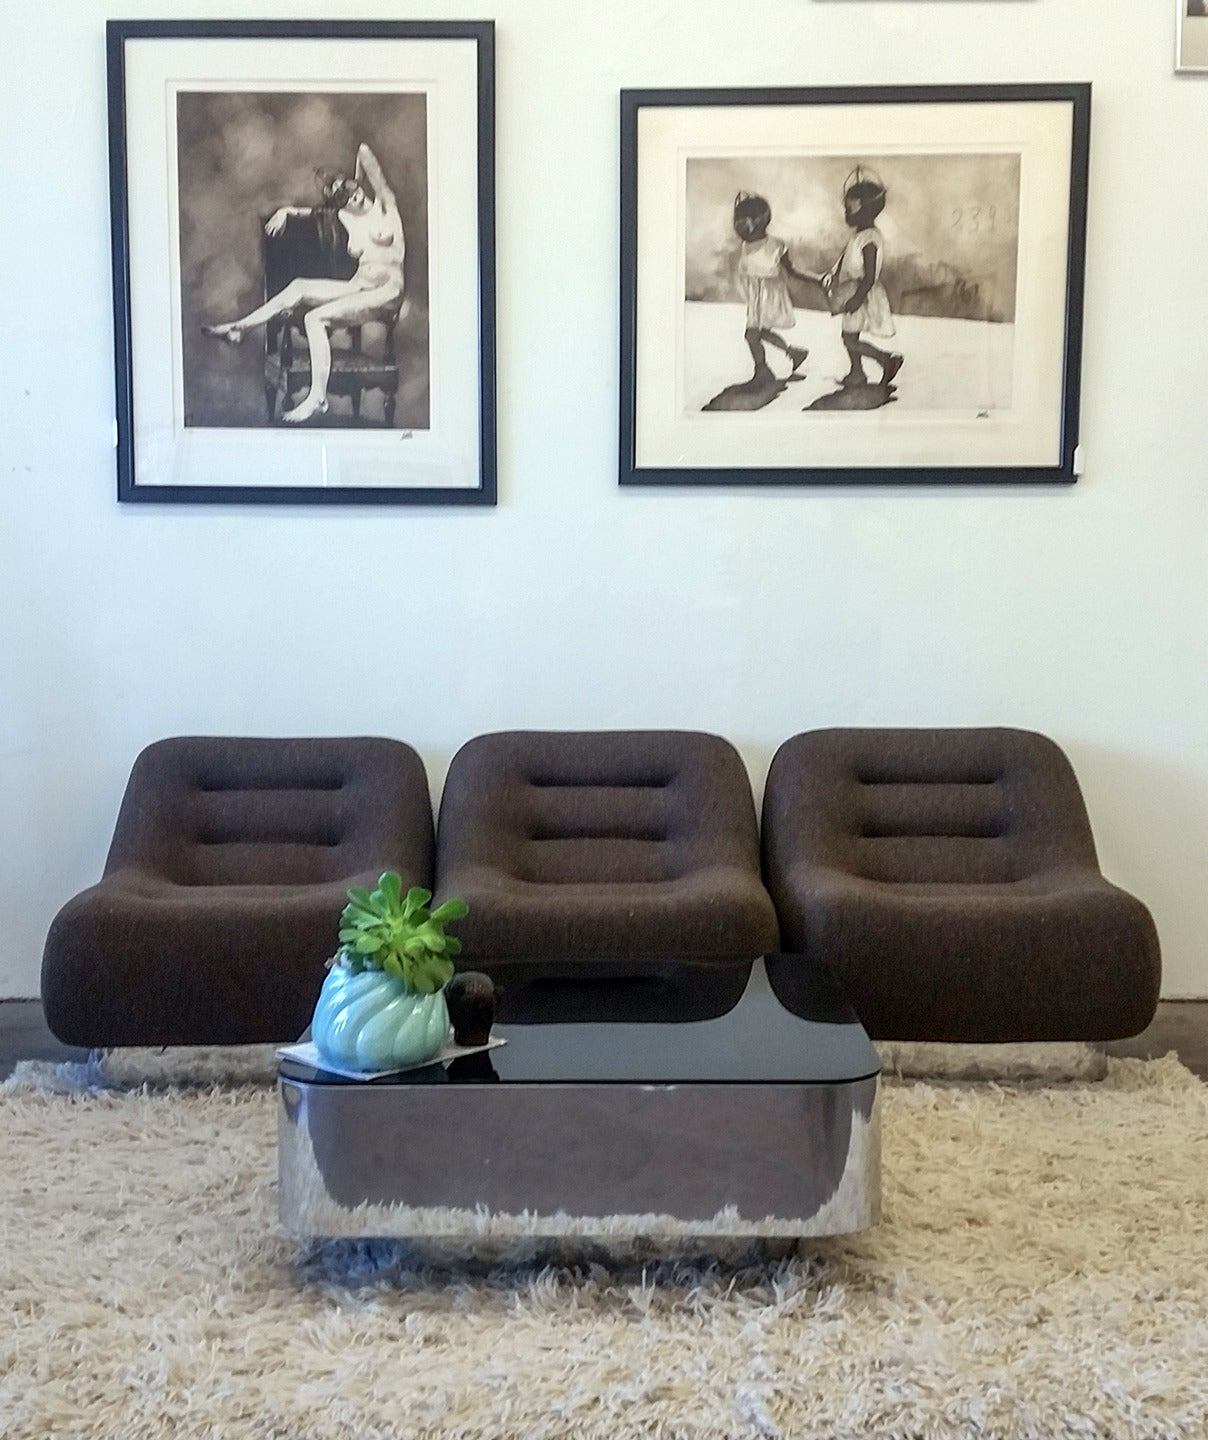 Living Room Suites For Sale: M. F. Harty For Stow Davis Tomorrow Sofa Chairs And Table